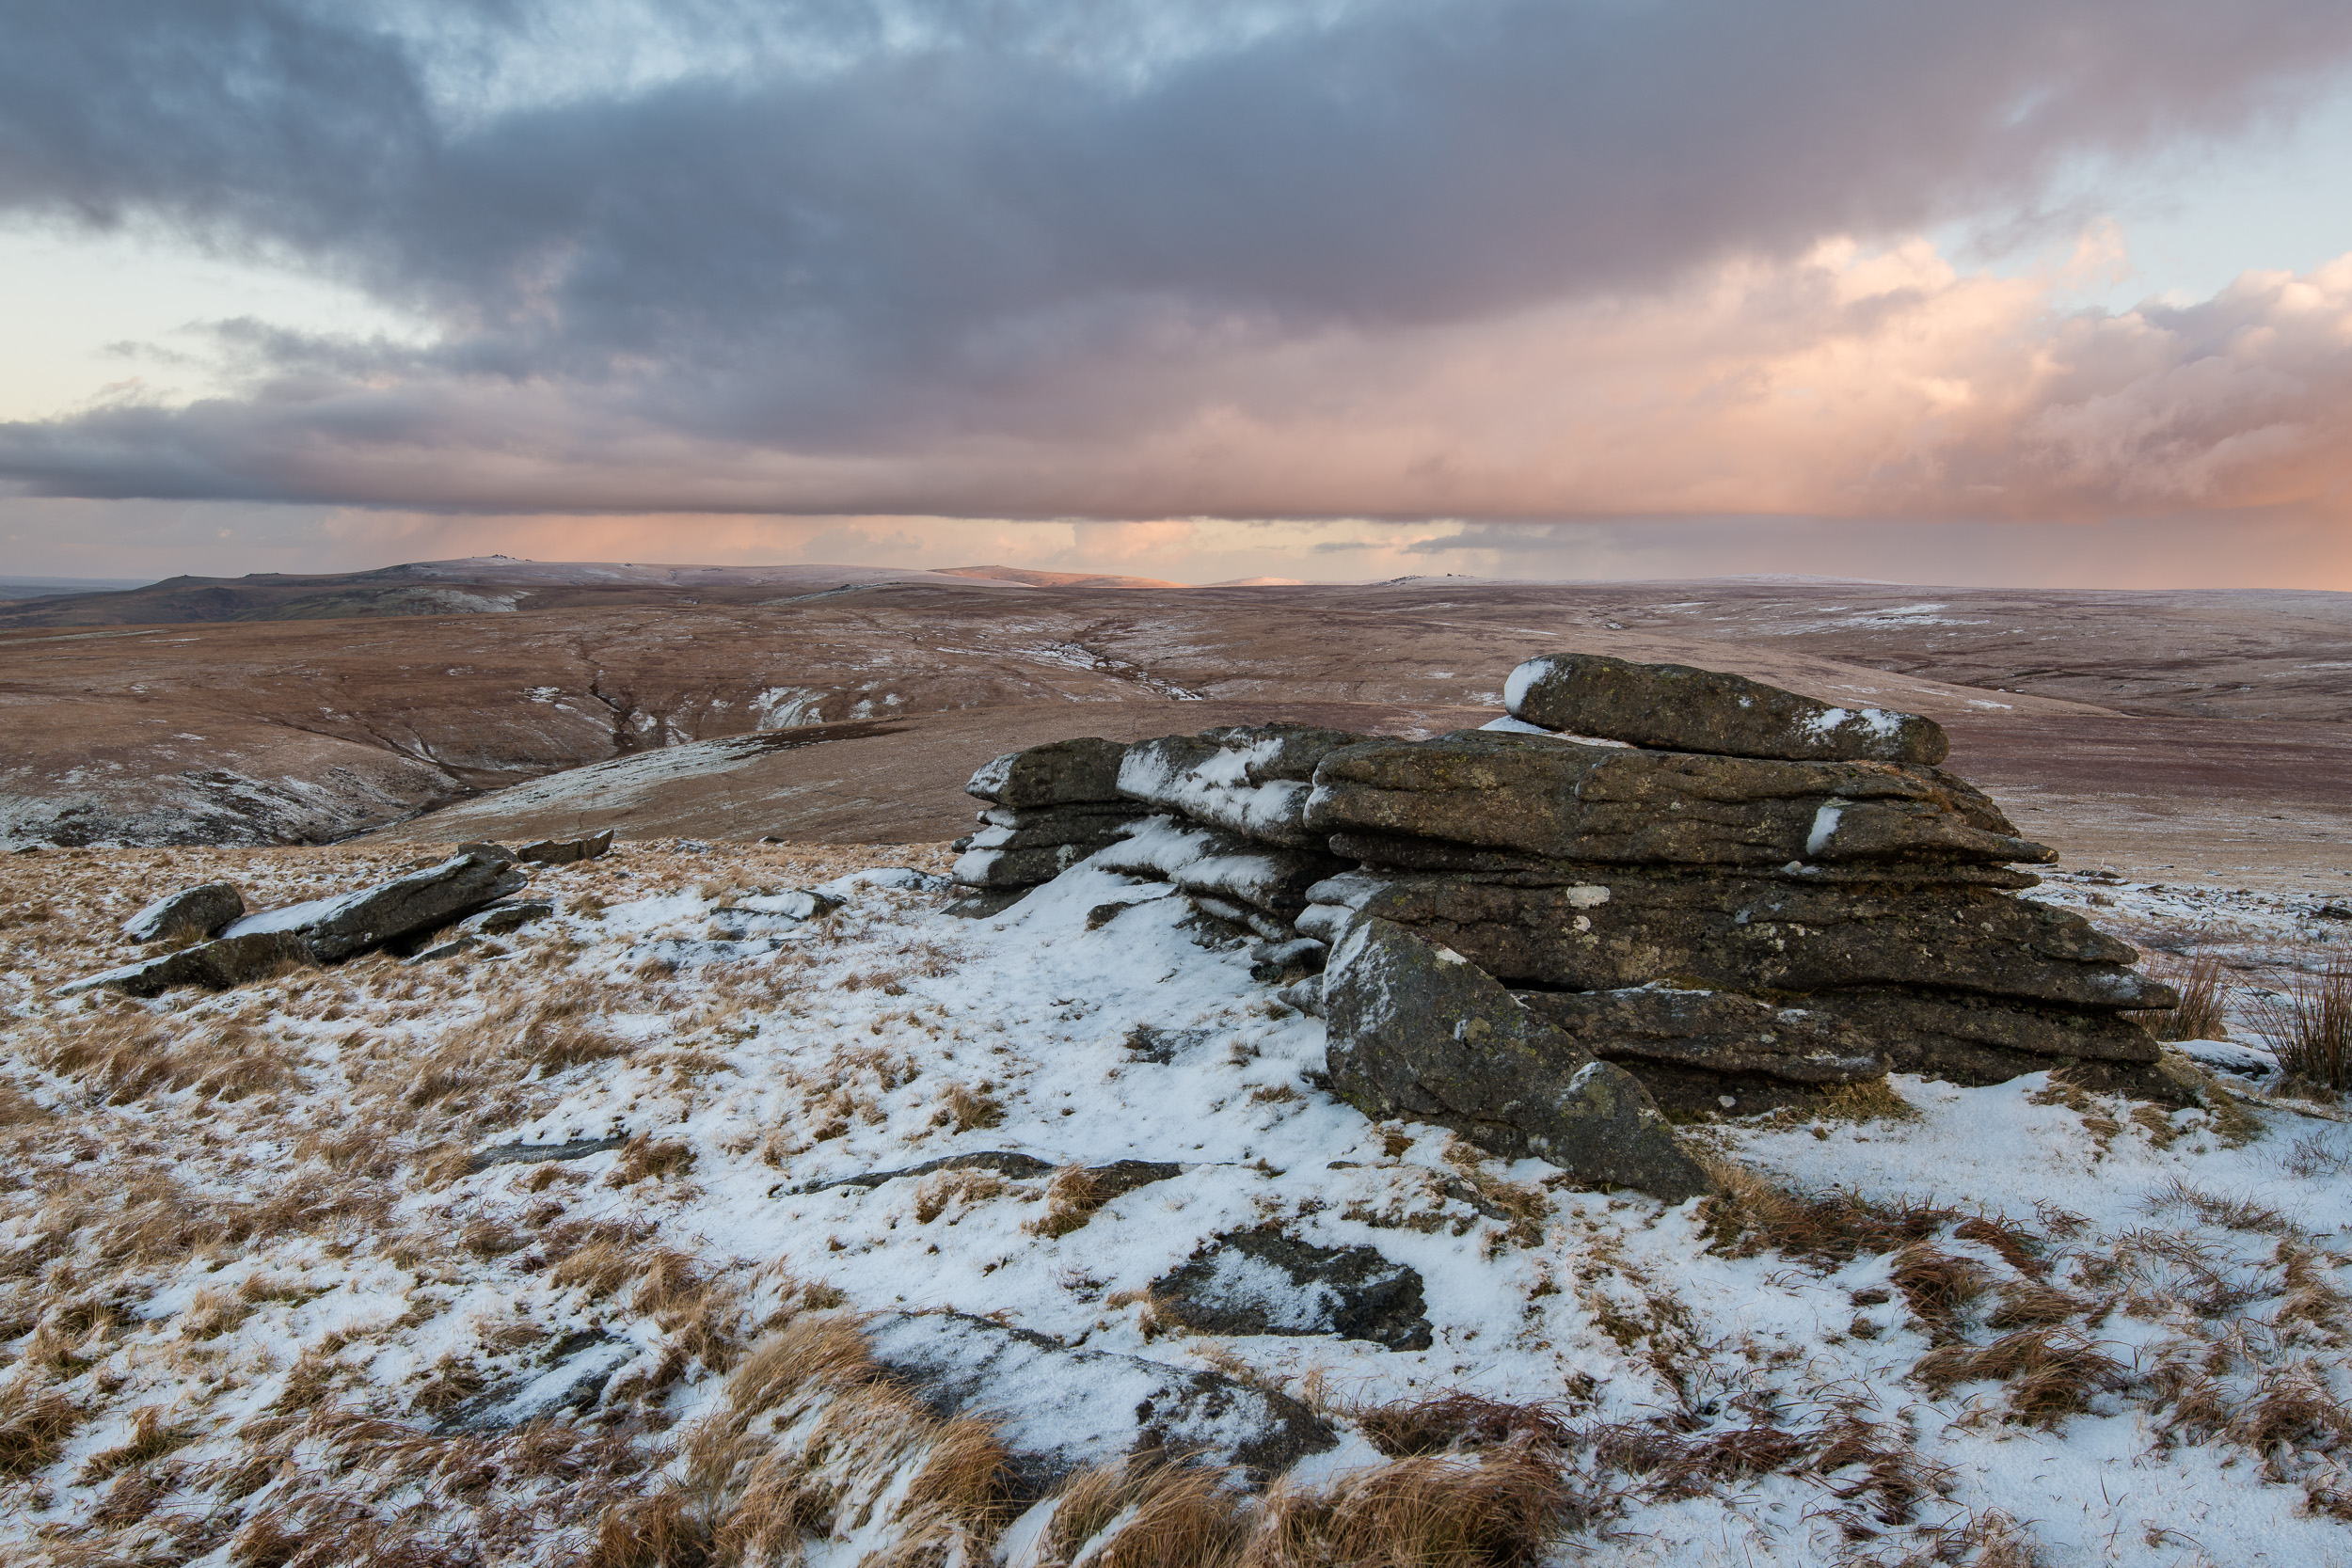 A View of Dartmoor from Great Mis Tor